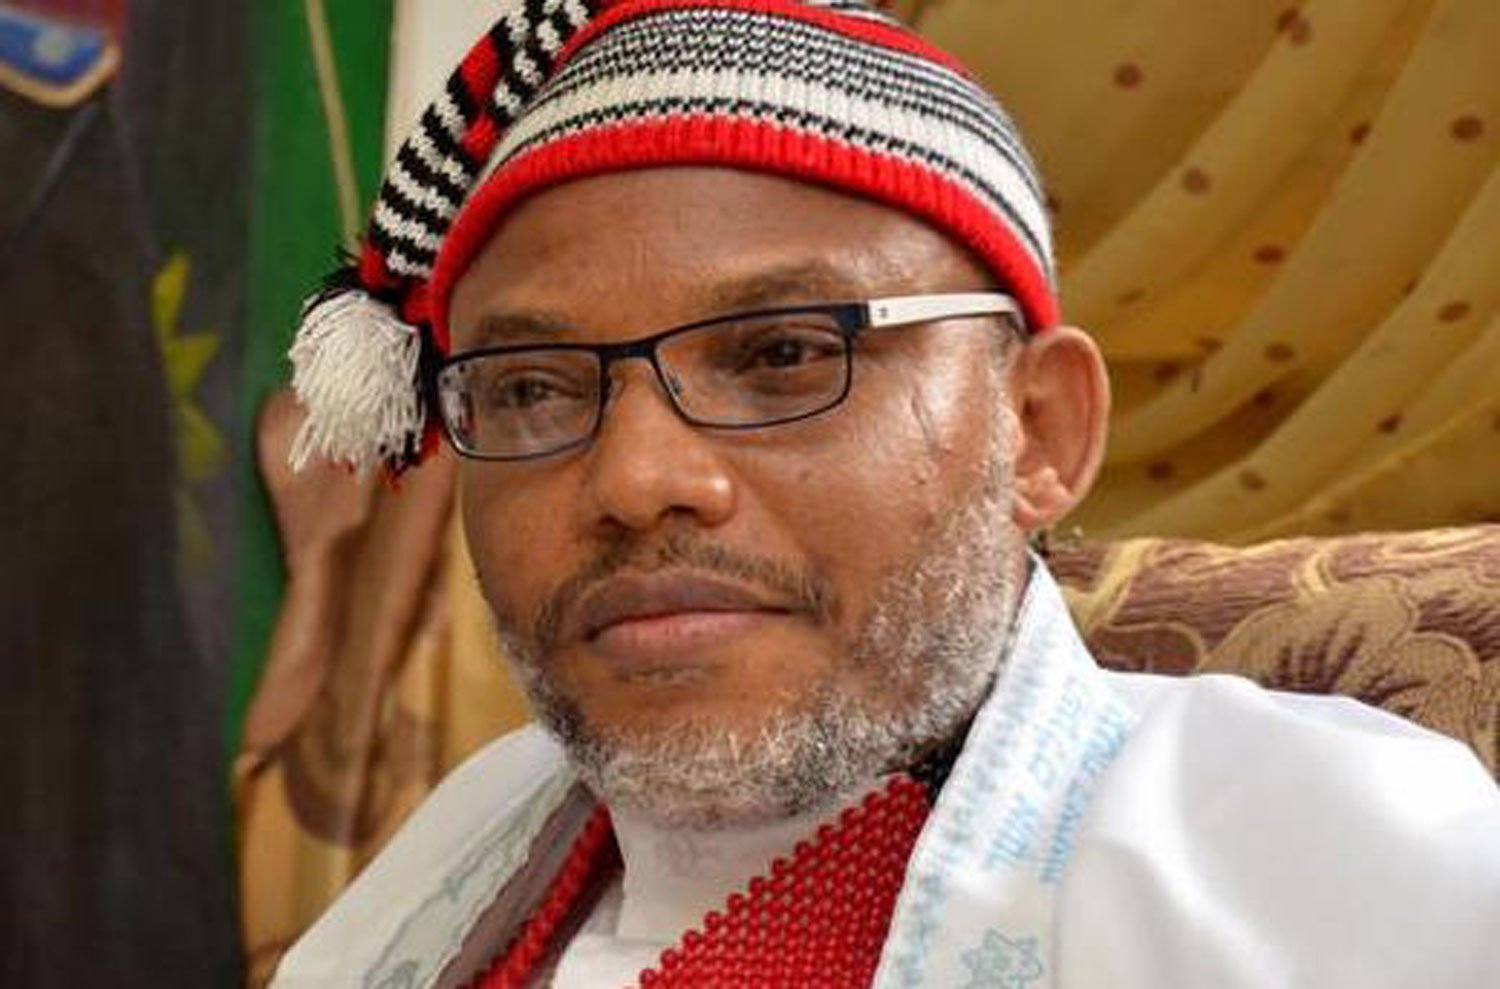 Biafra: Nnamdi Kanu Sends Strong Message To FG